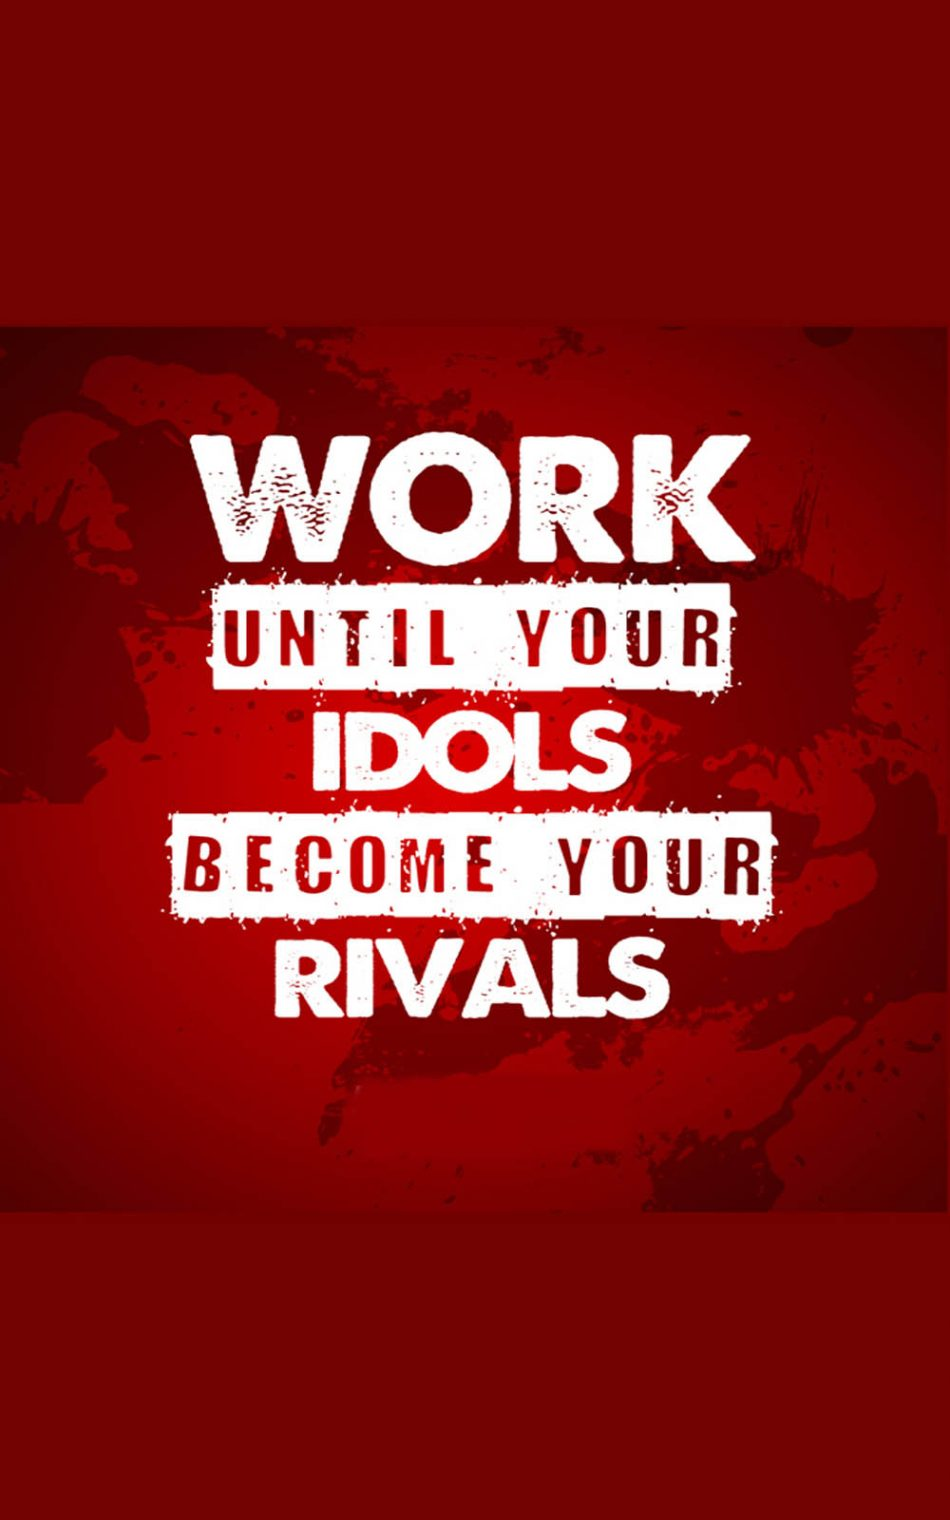 Work Until Your Idols Become Your Rivals HD Mobile Wallpaper